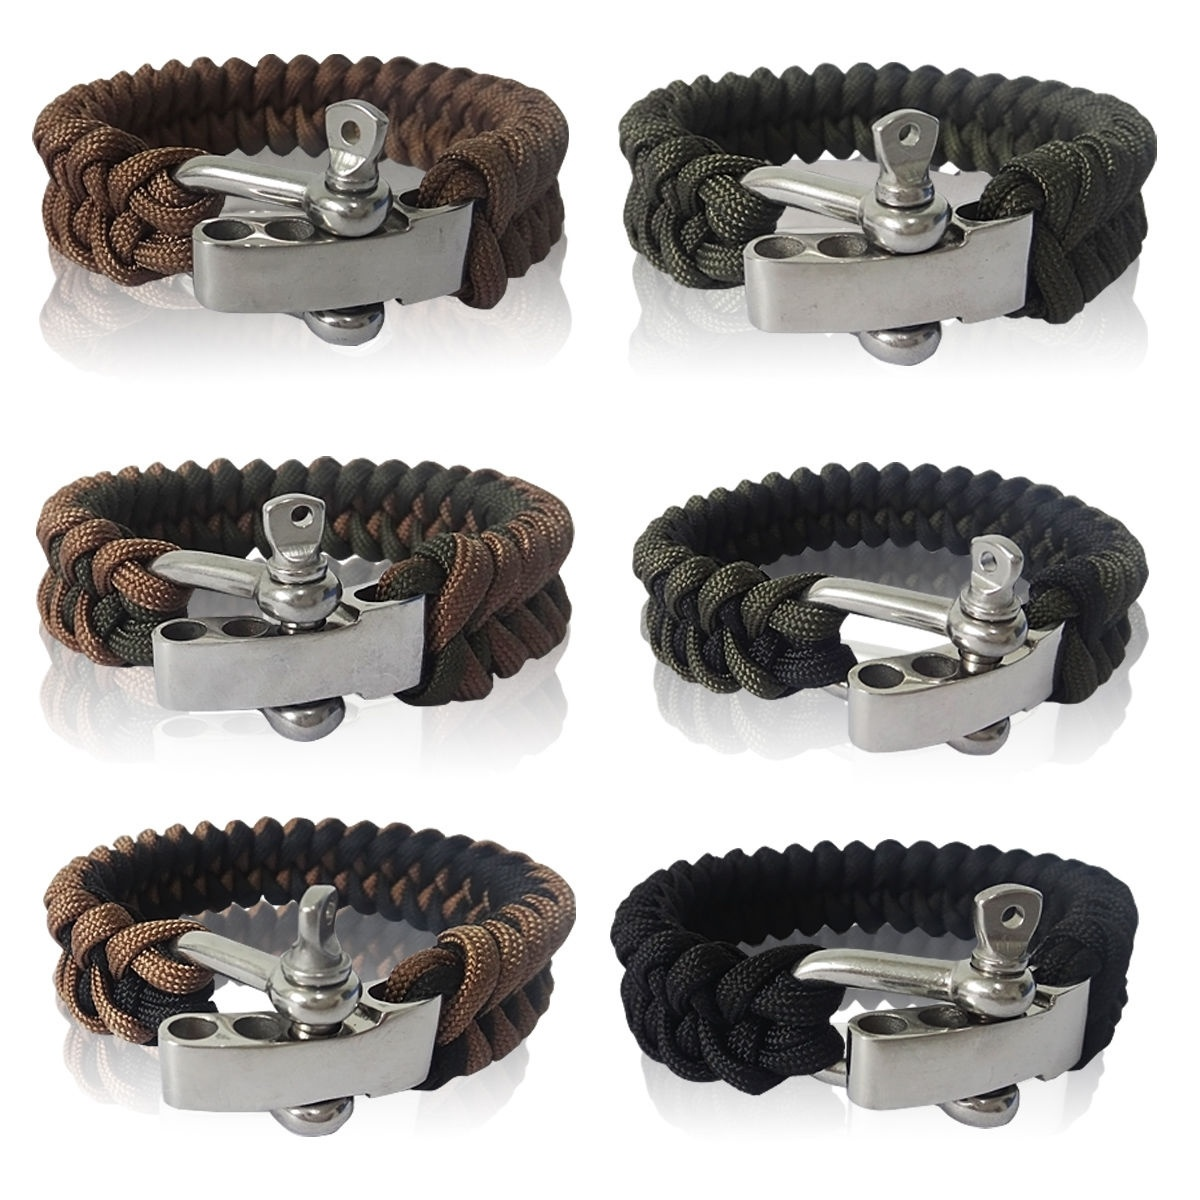 Yougle Survival Adjustable 550 Paracord Bracelet Parachute Cord Wrist Band With Stainless Steel Bow Shackle Buckle